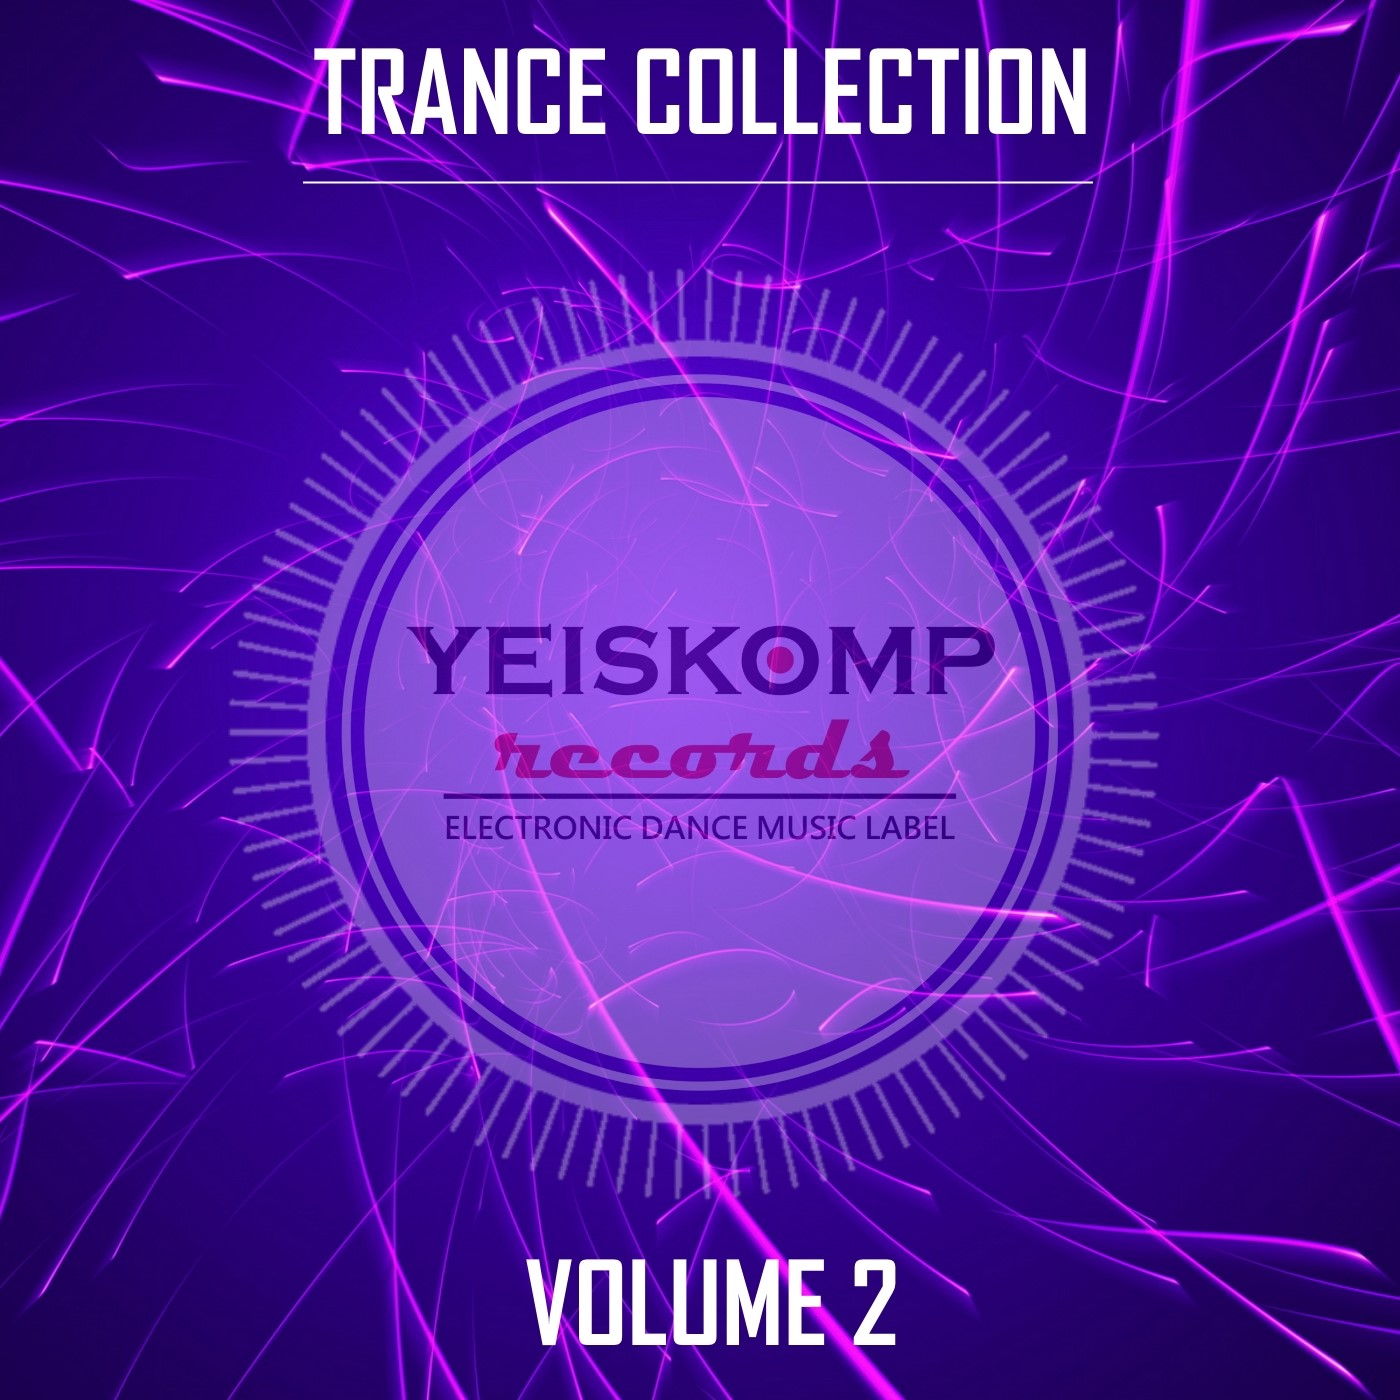 Trance Collection by YR, Vol. 2